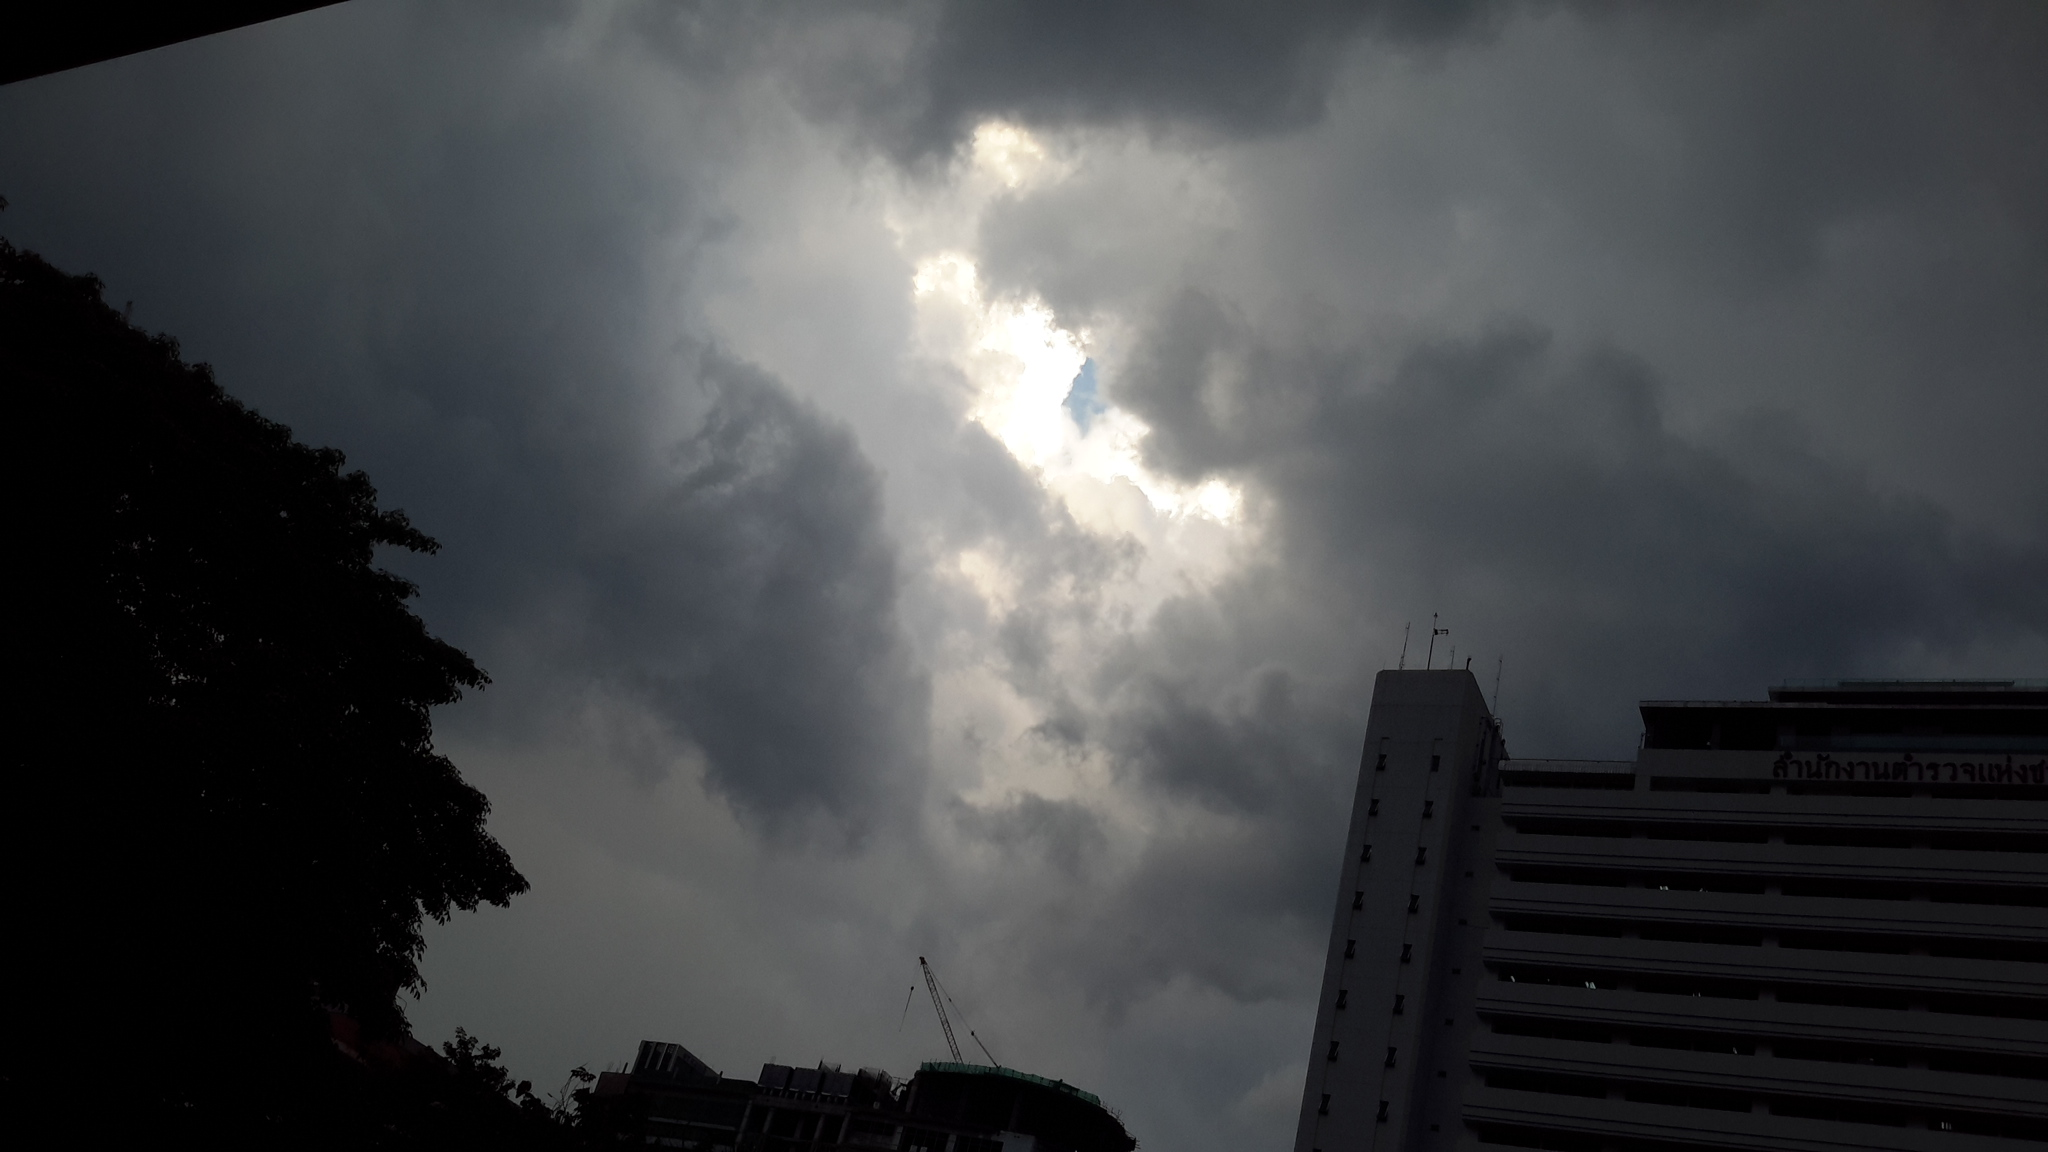 Little hole of light in the dark cloudy sky